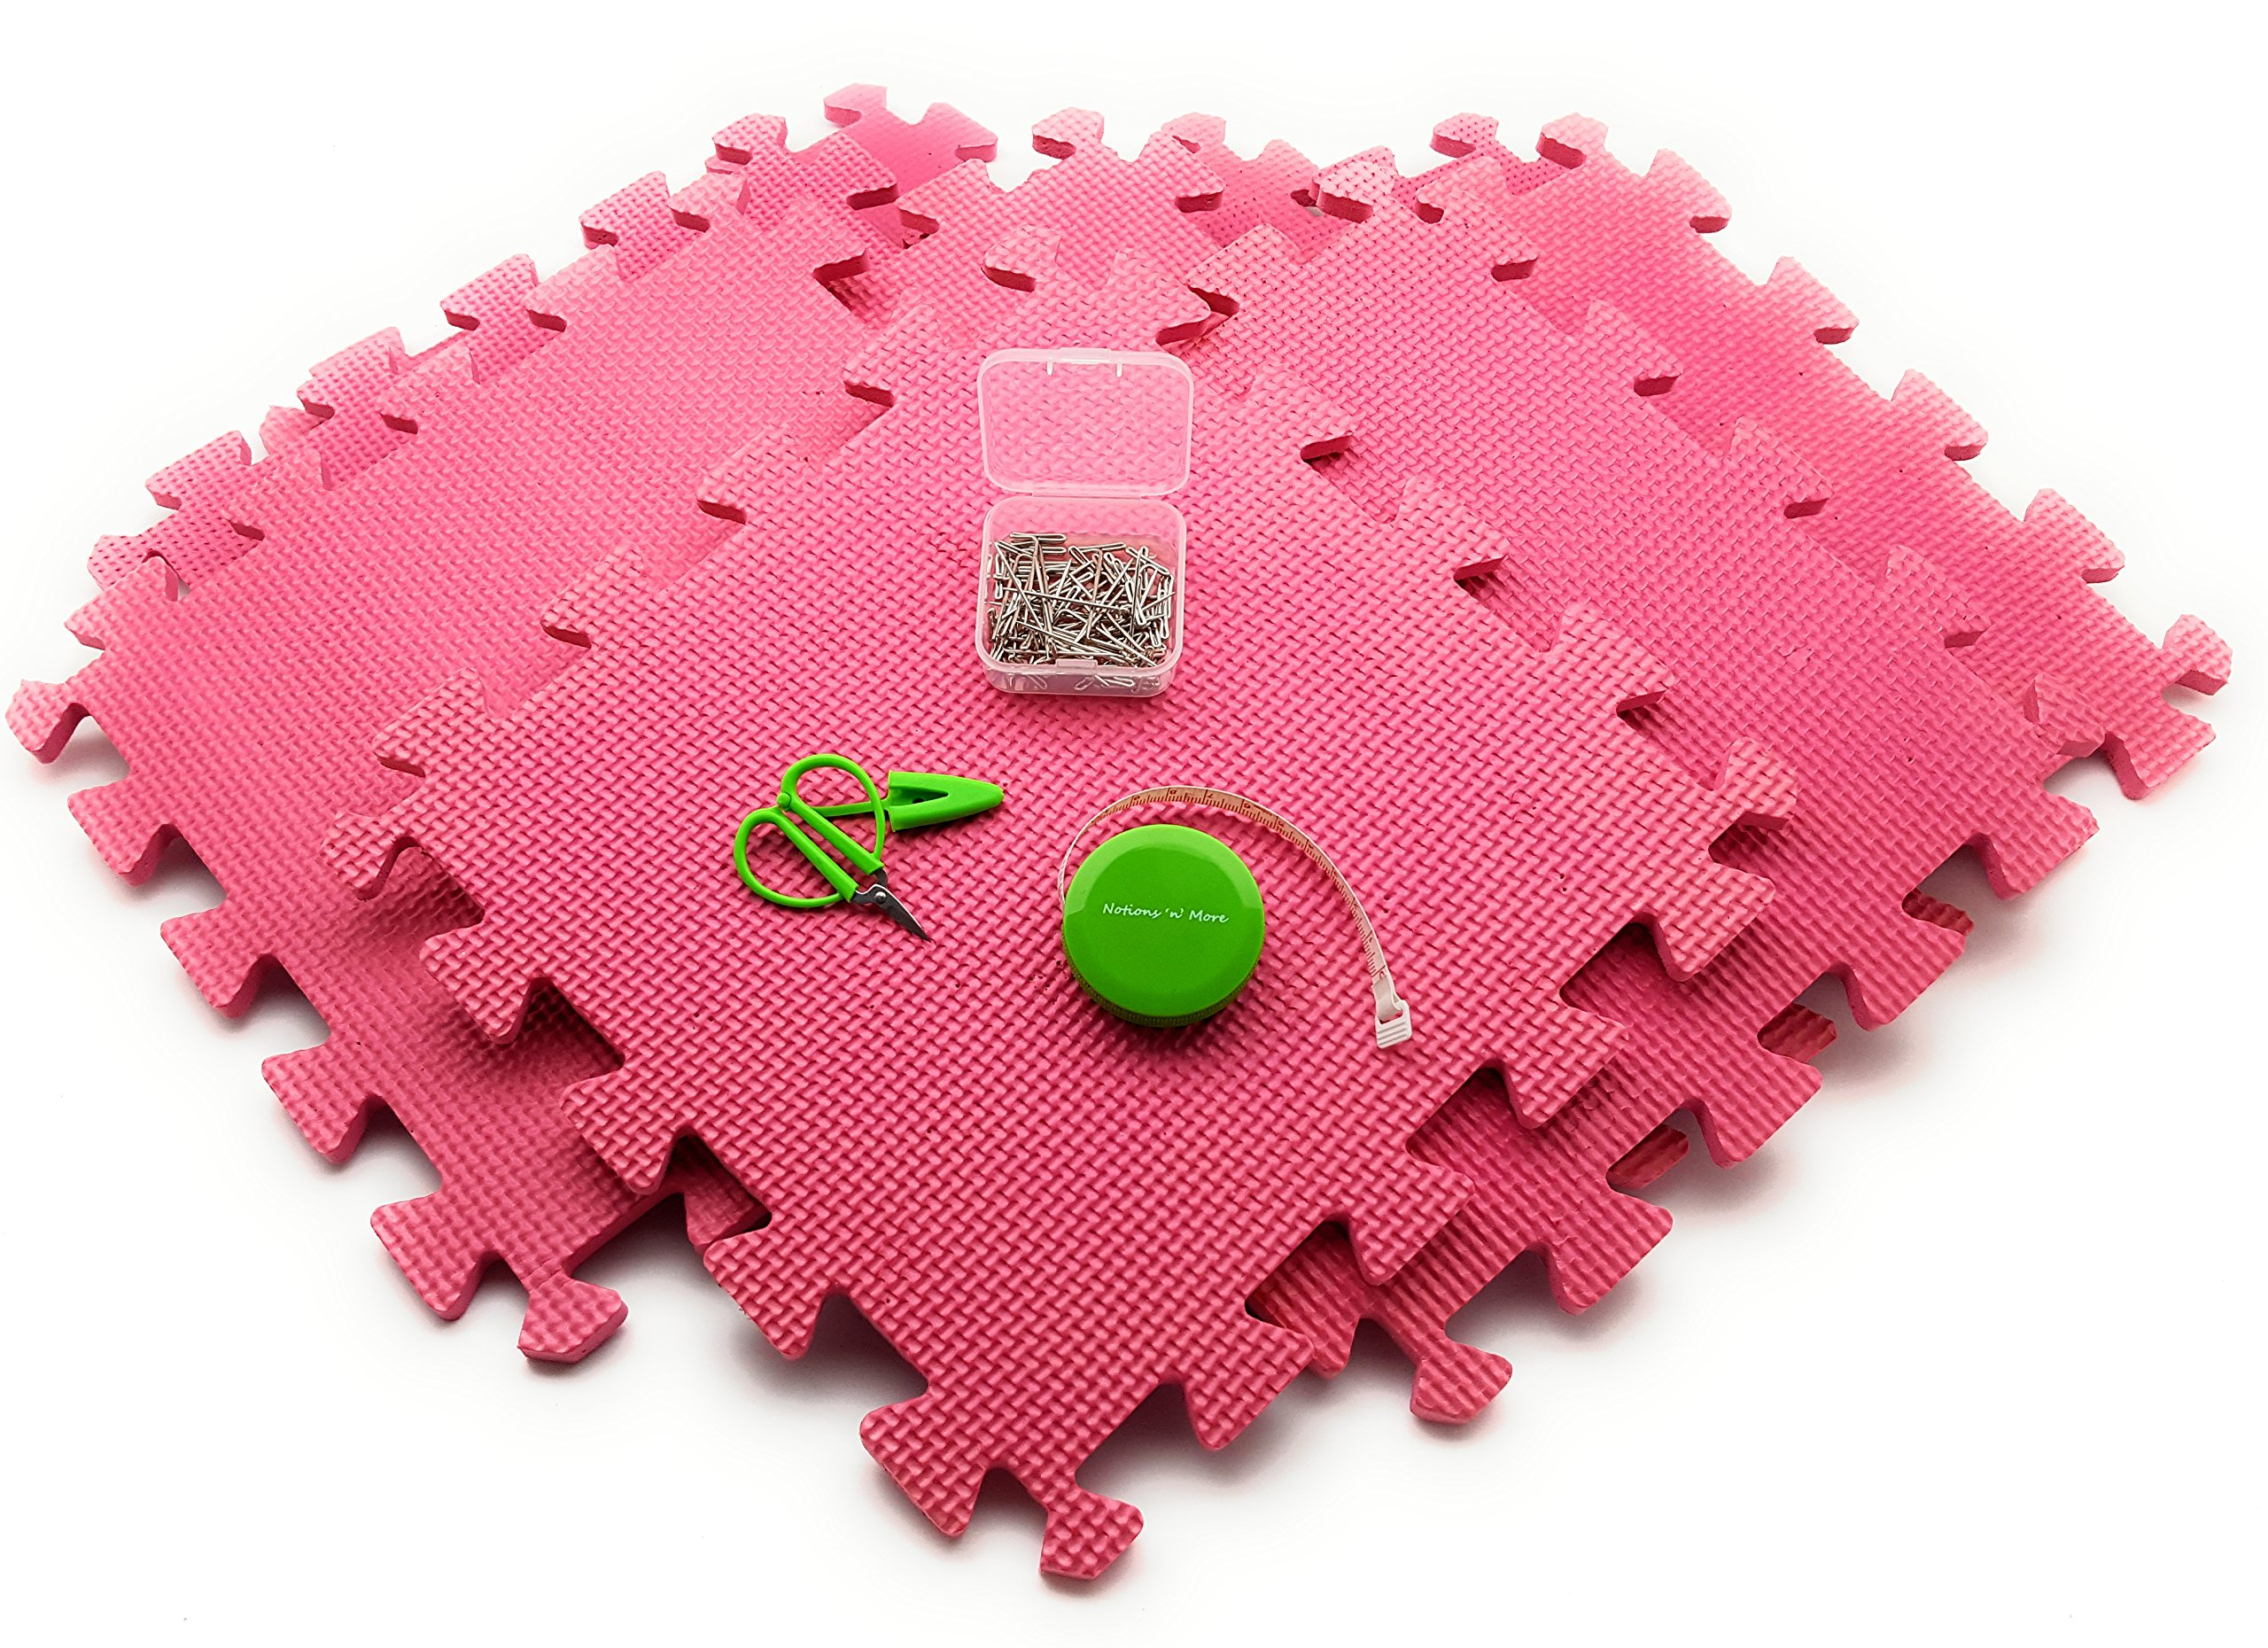 Blocking Mats Kit for knitting or crochet: 9 Foam Boards WITH ESSENTIALS PACK: Tape Measure, T-Pins 50 pack, SuperSnips Mini Scissors! NO CONFUSING GRIDLINES!